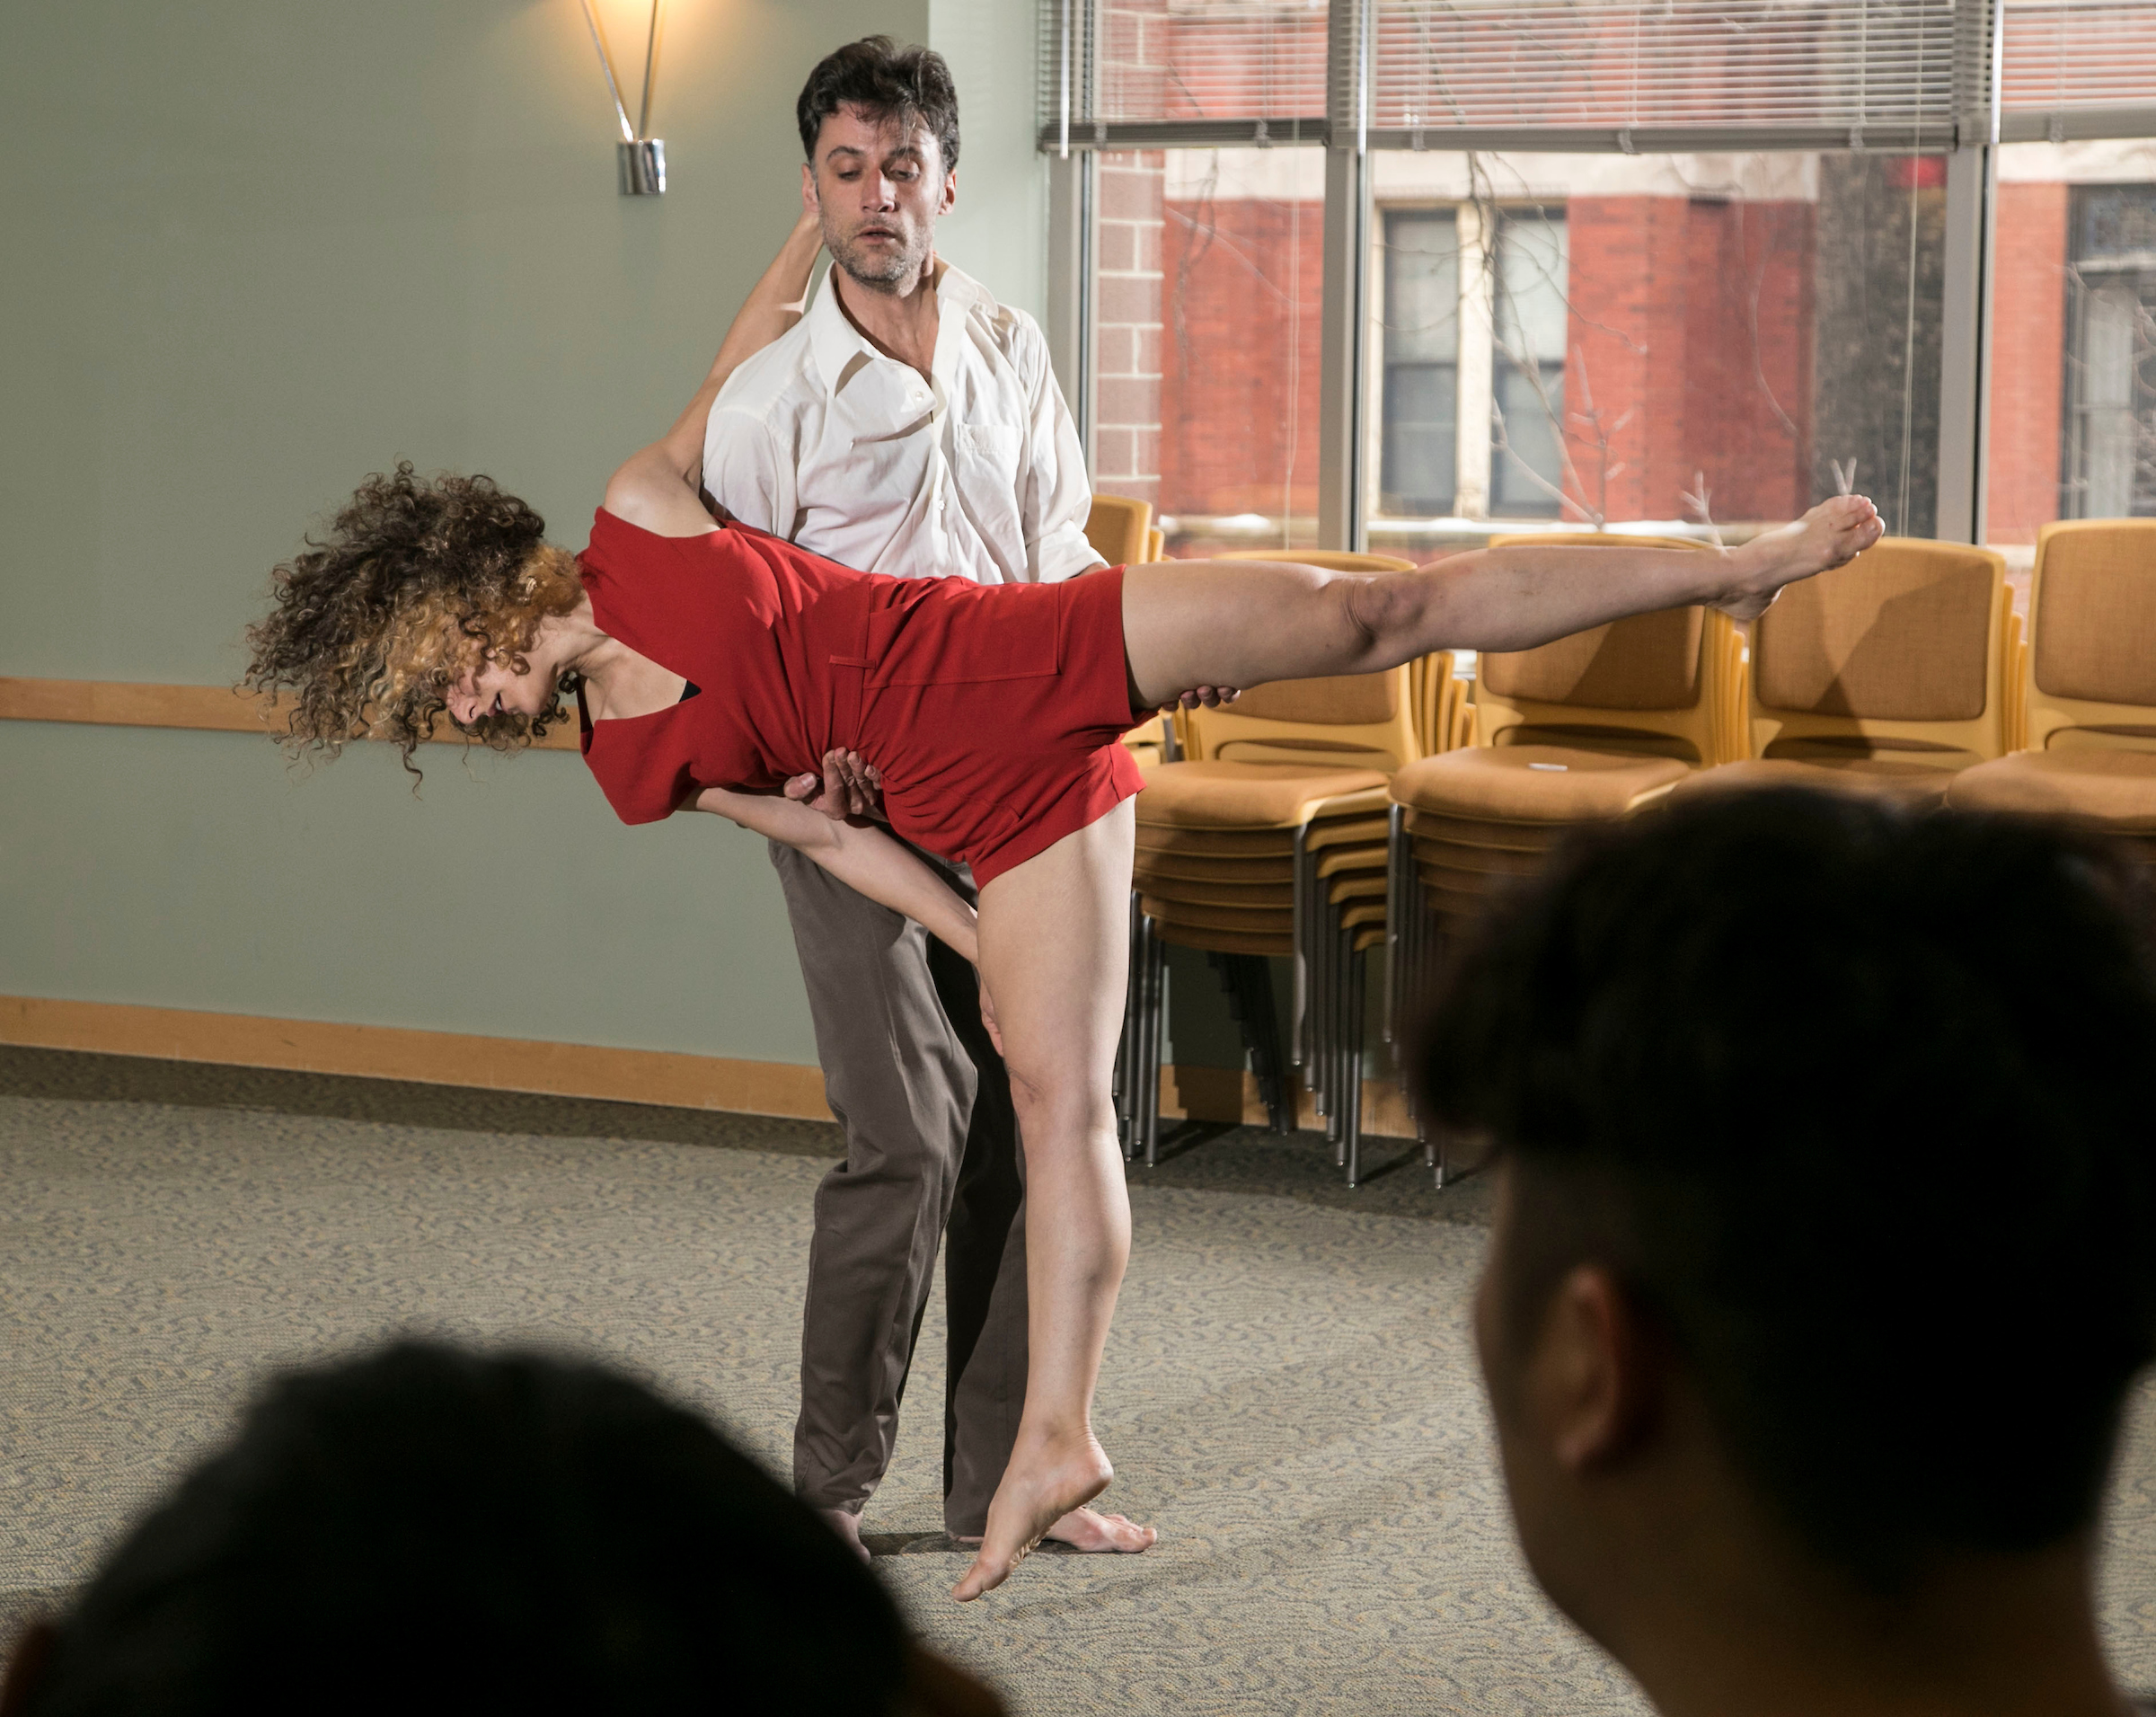 Miriam Engel, artistic director of Jerusalem's Angela Dance Company, and her husband and dance partner, Sergey Shamota